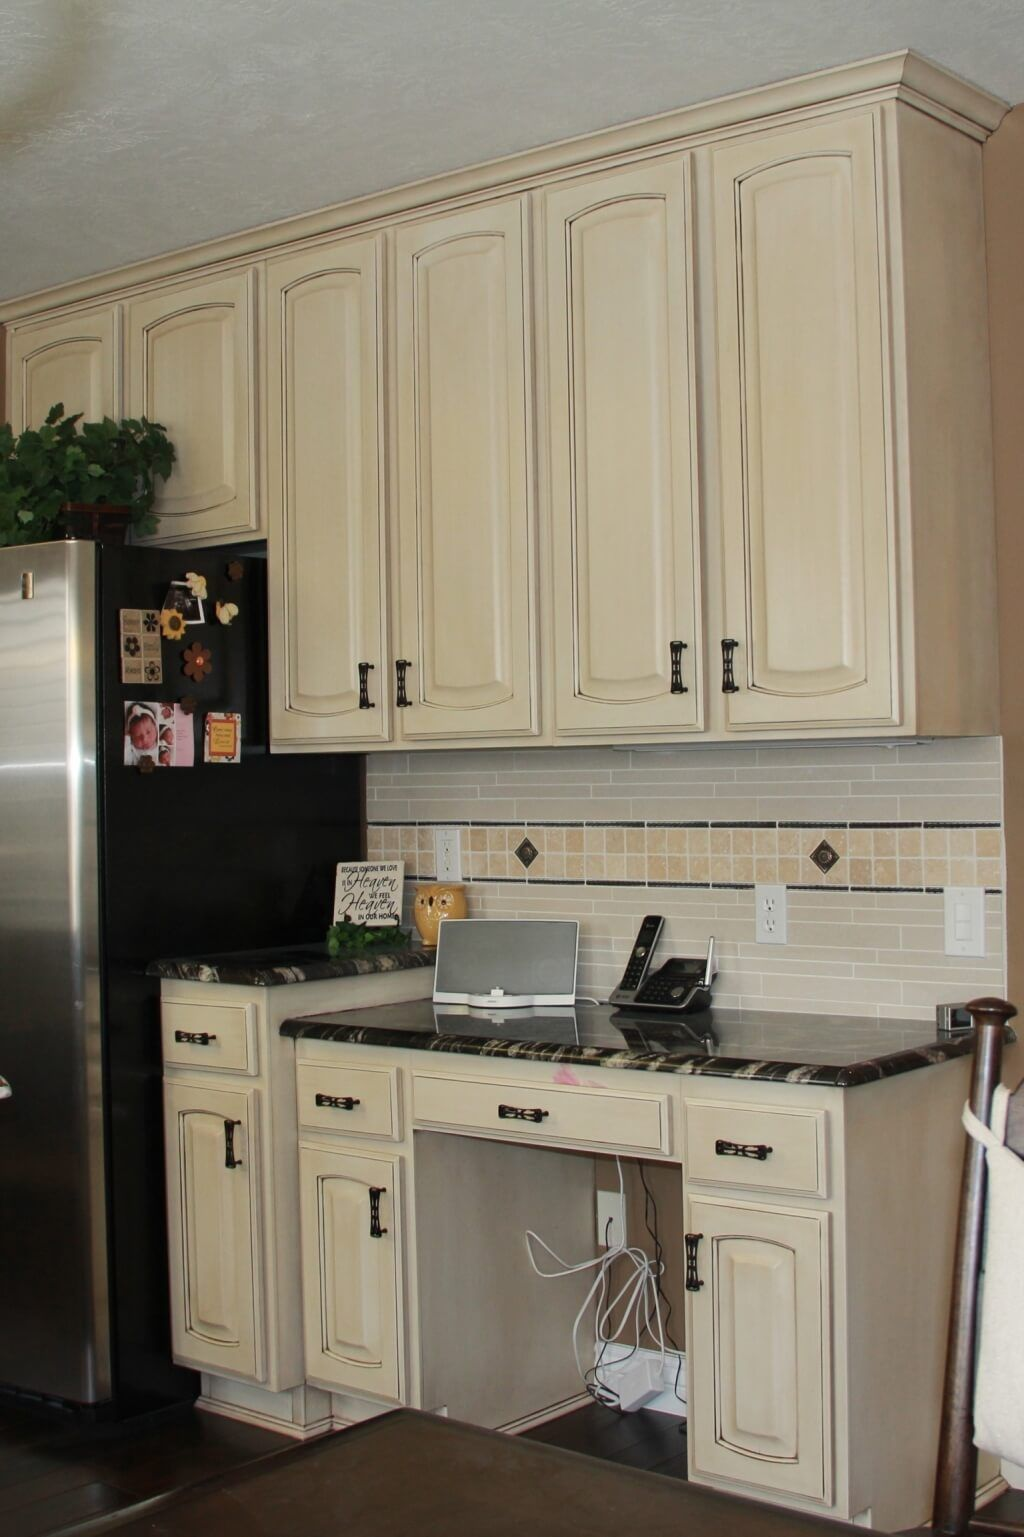 white kitchen cabinets good idea photo - 9